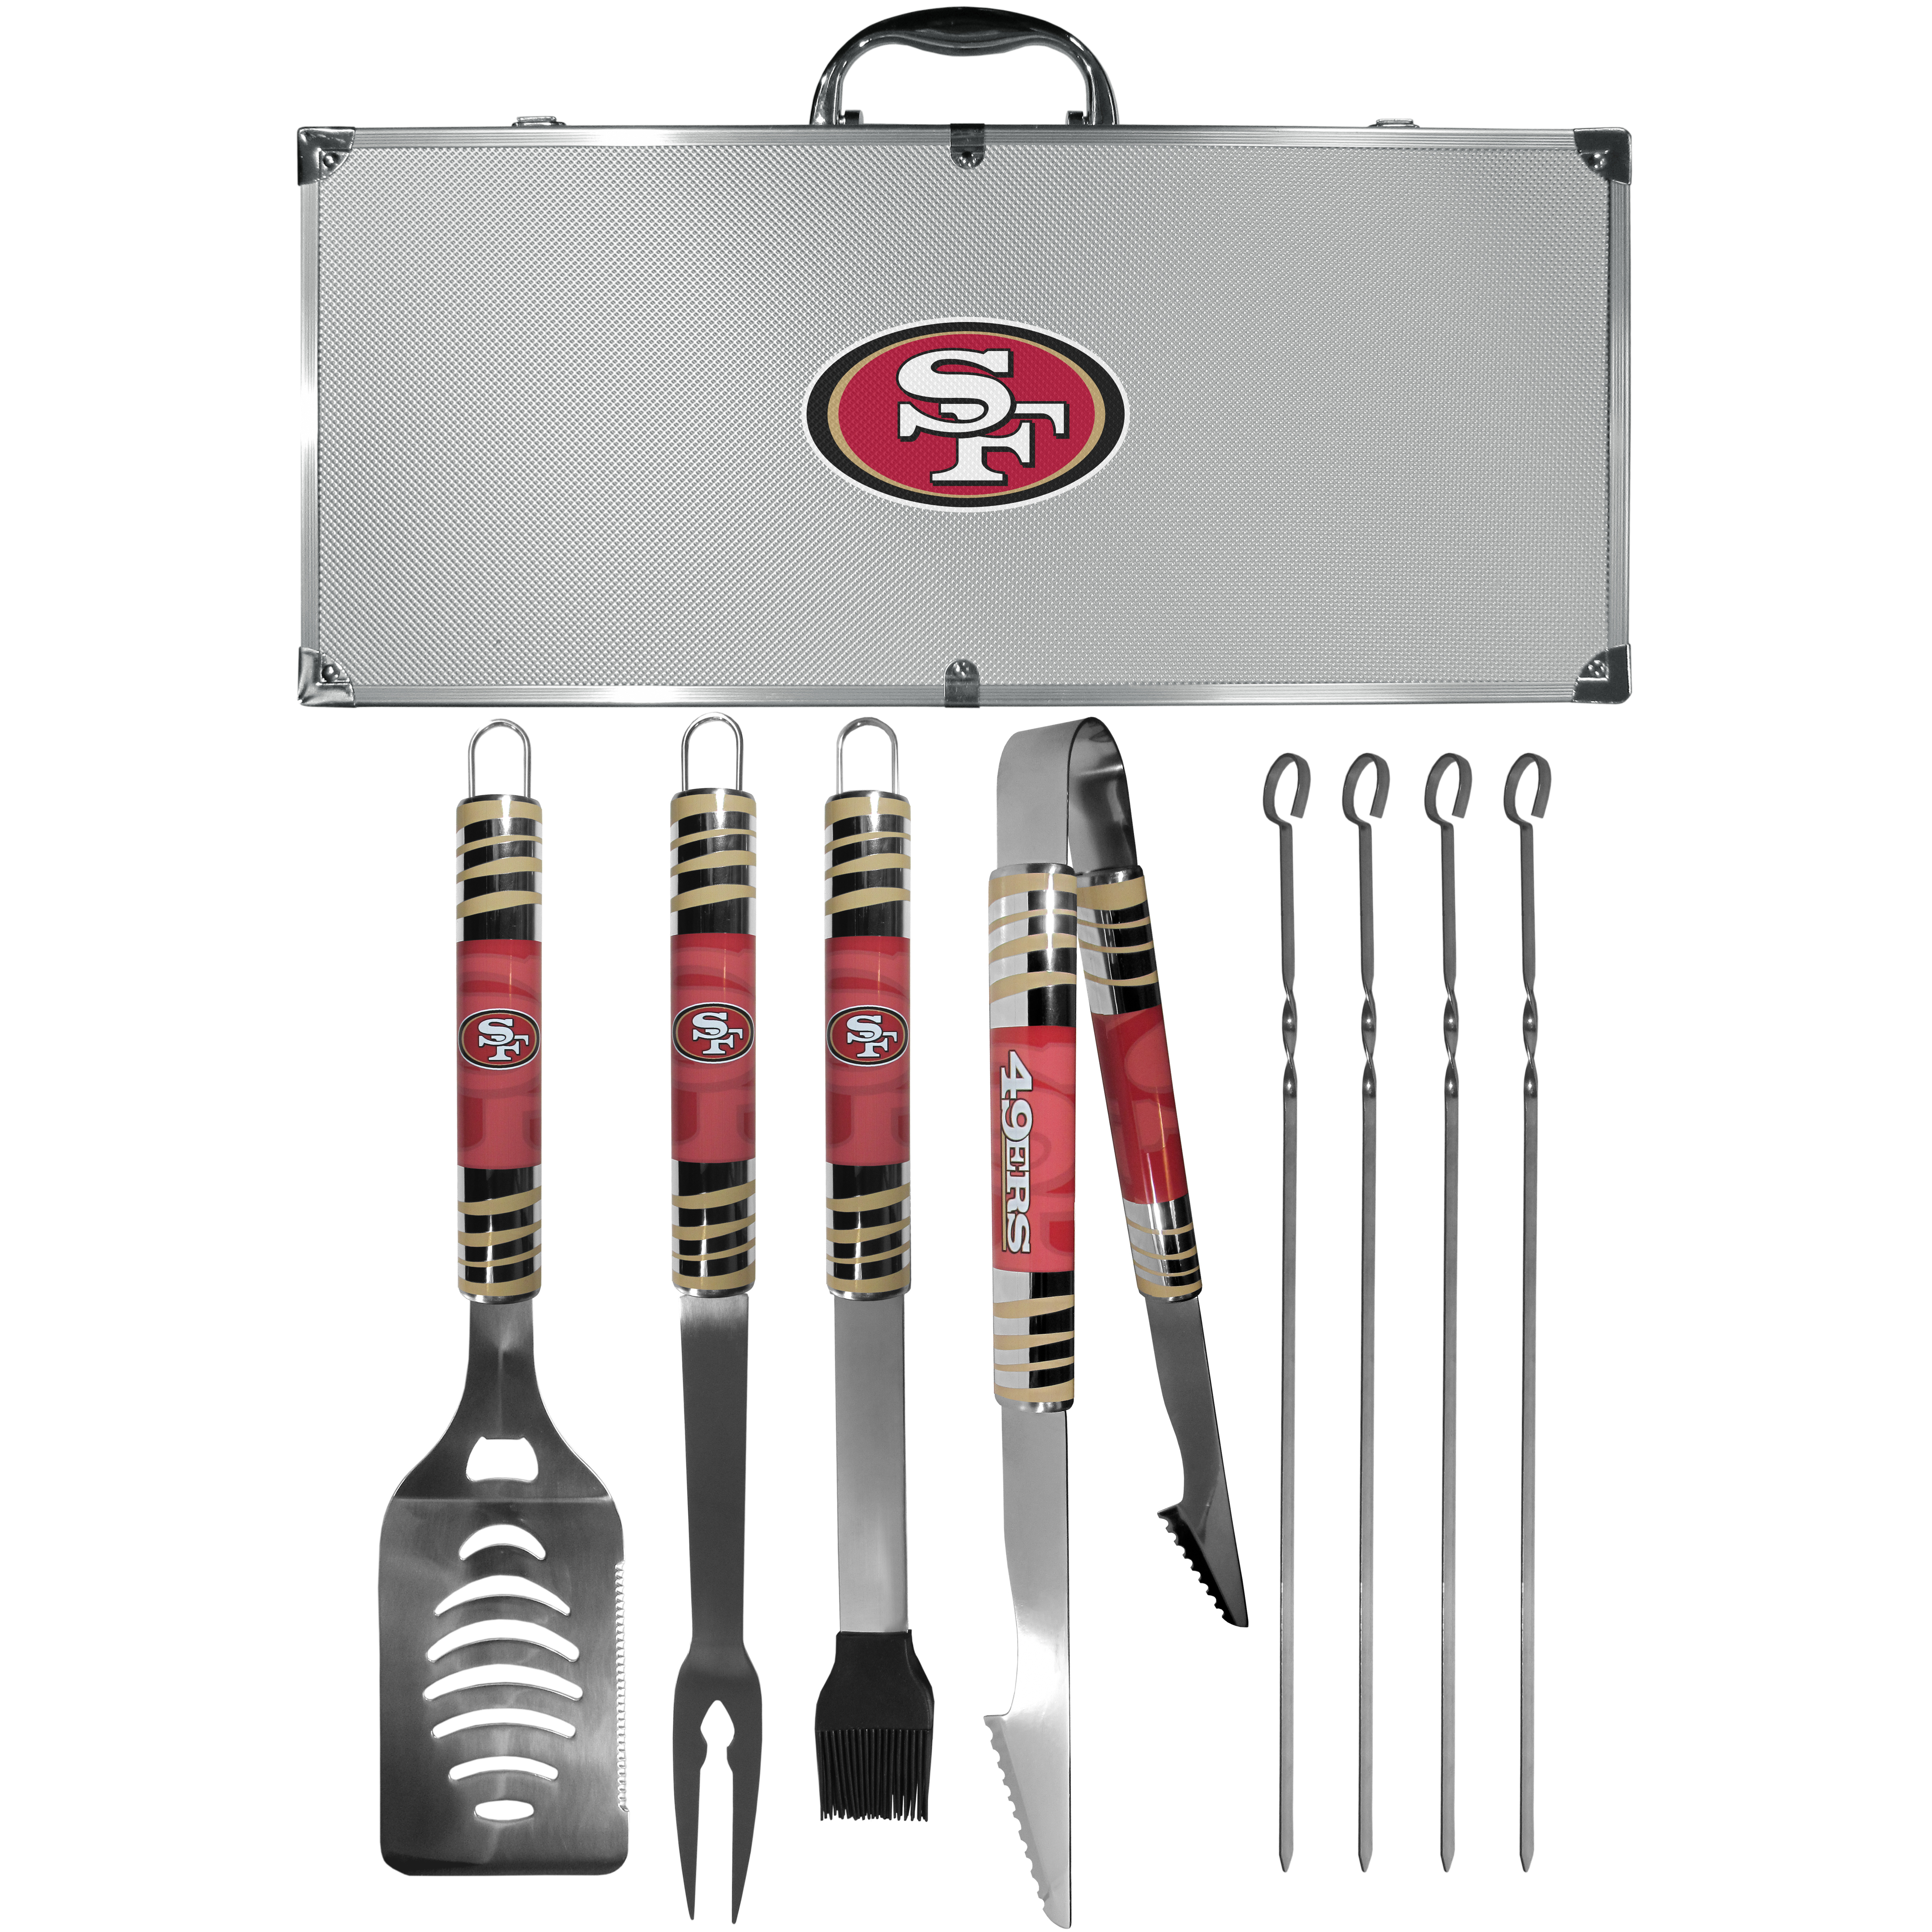 San Francisco 49ers 8 pc Tailgater BBQ Set - This is the ultimate San Francisco 49ers tailgate accessory! The high quality, 420 grade stainless steel tools are durable and well-made enough to make even the pickiest grill master smile. This complete grill accessory kit includes; 4 skewers, spatula with bottle opener and serrated knife edge, basting brush, tongs and a fork. The 18 inch metal carrying case is perfect for great outdoor use making grilling an ease while camping, tailgating or while having a game day party on your patio. The tools are 17 inches long and feature vivid team graphics. The metal case features a large team emblem with exceptional detail. This high-end men's gift is sure to be a hit as a present on Father's Day or Christmas.